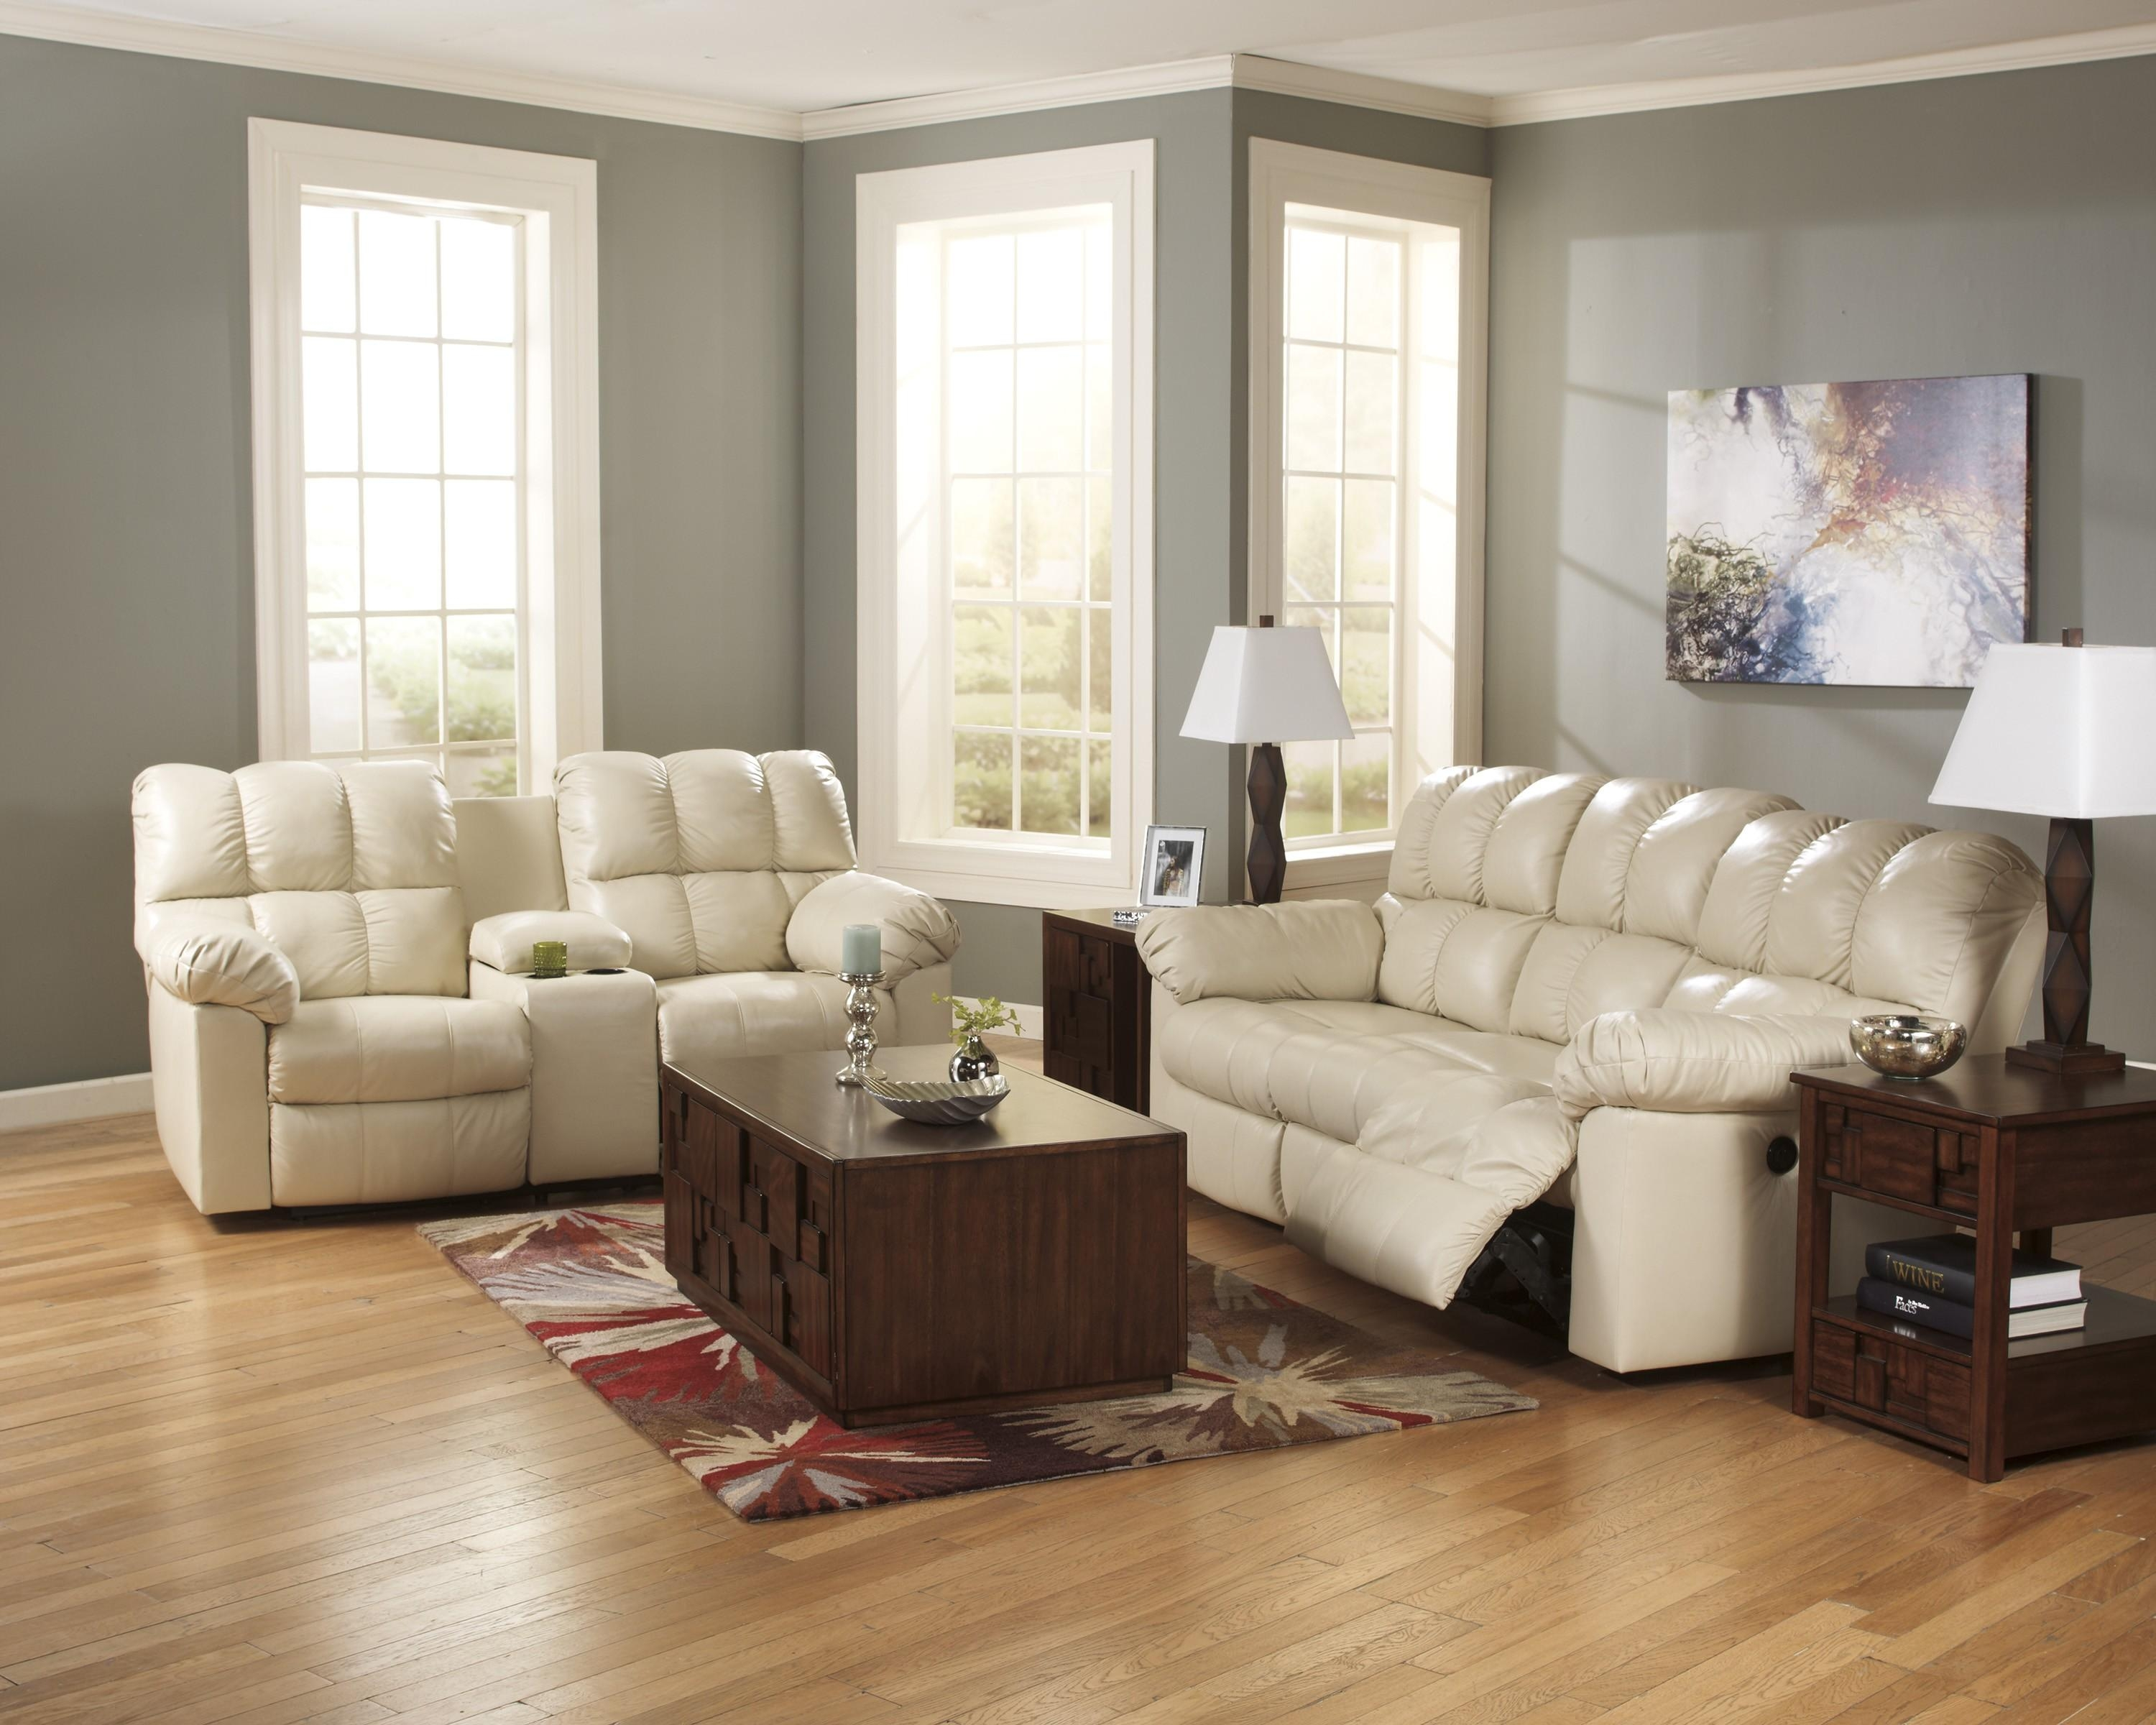 16 Cream Colored Leather Sofa | Auto-Auctions regarding Cream Colored Sofa